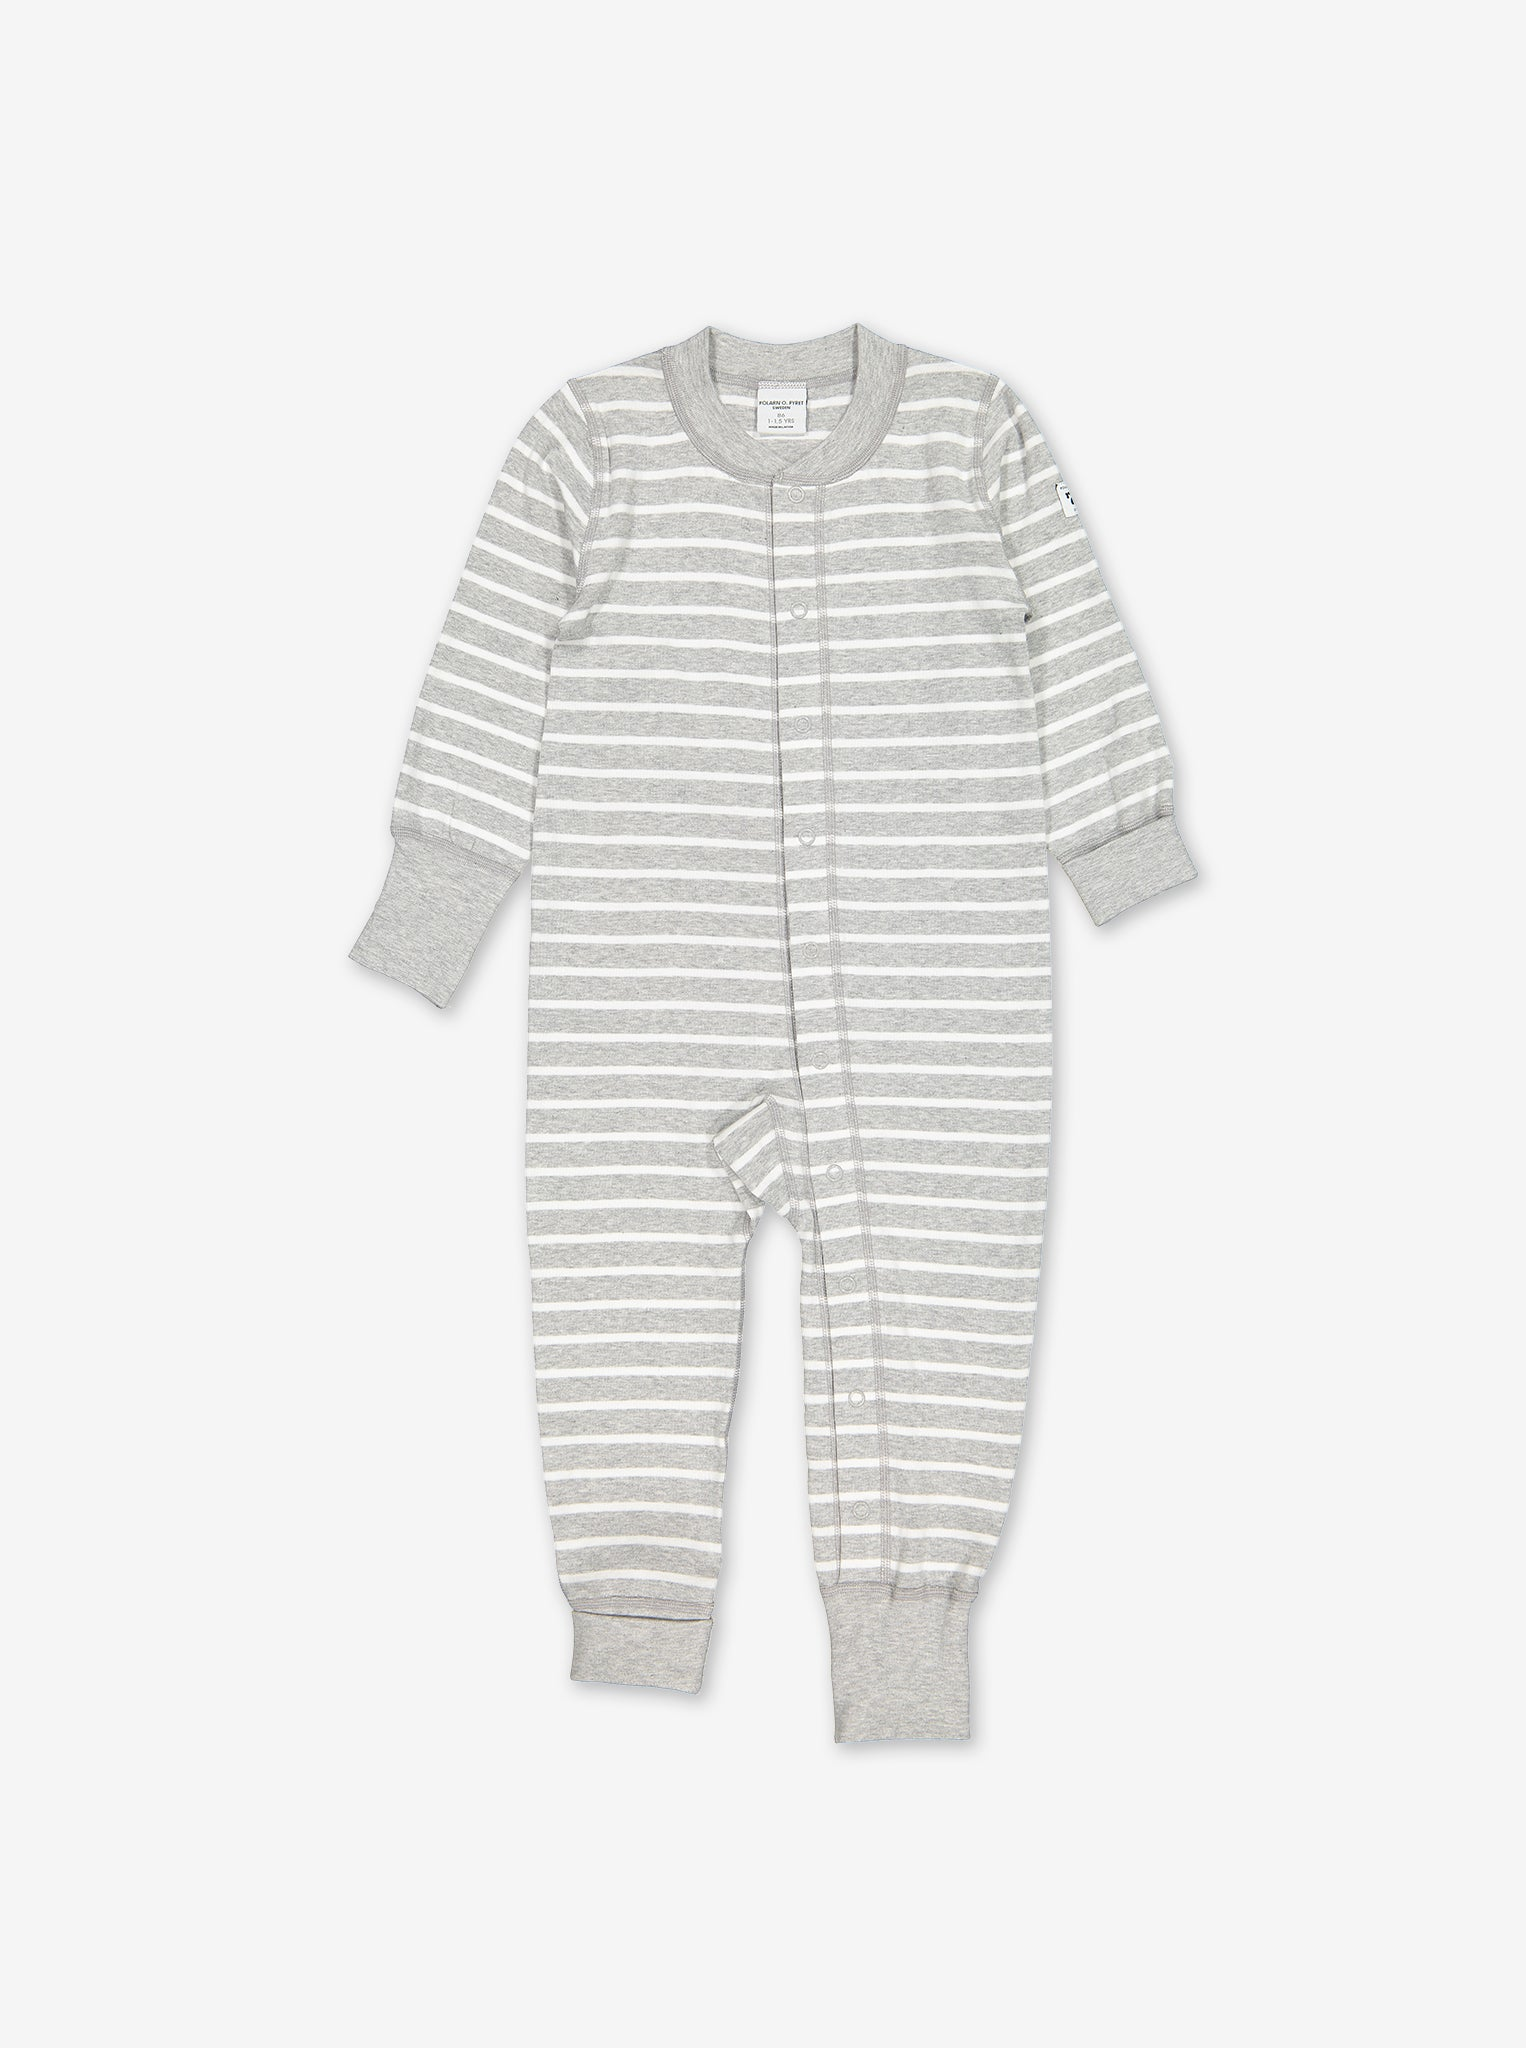 A neutral grey and white stripe print all-in-one for babies, featuring poppers from neck to ankle and roll down cuffs.